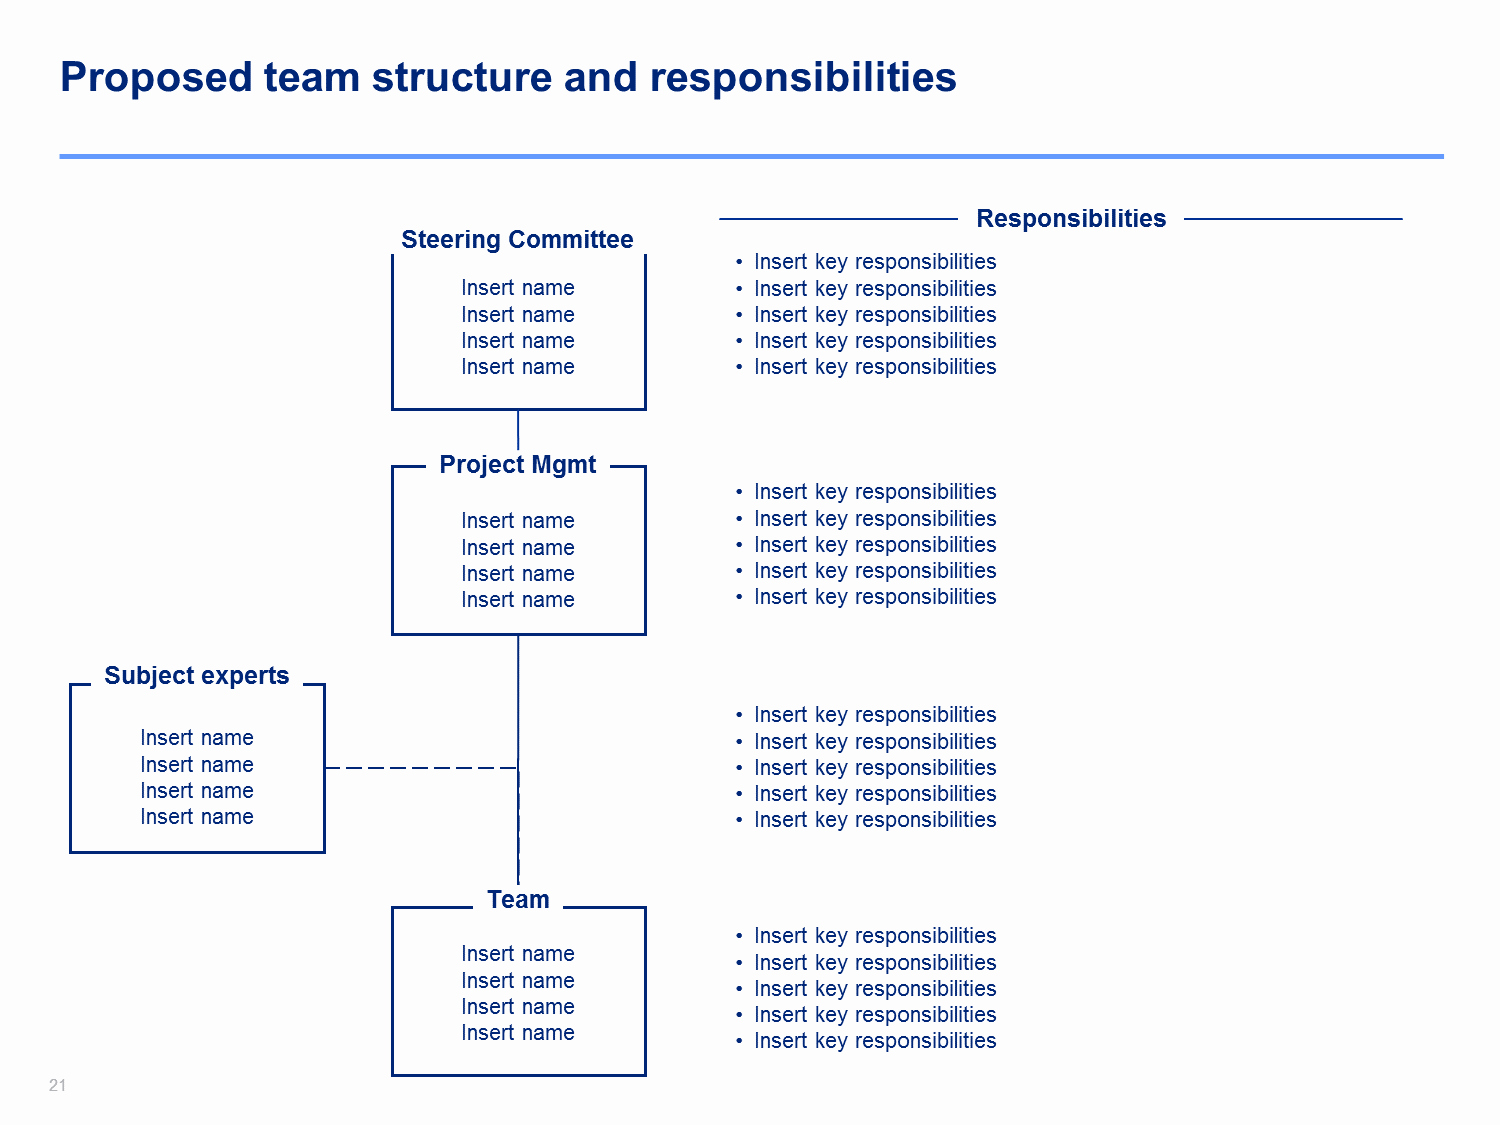 Consulting Proposal Template Mckinsey Lovely Consulting Proposal Template In Powerpoint